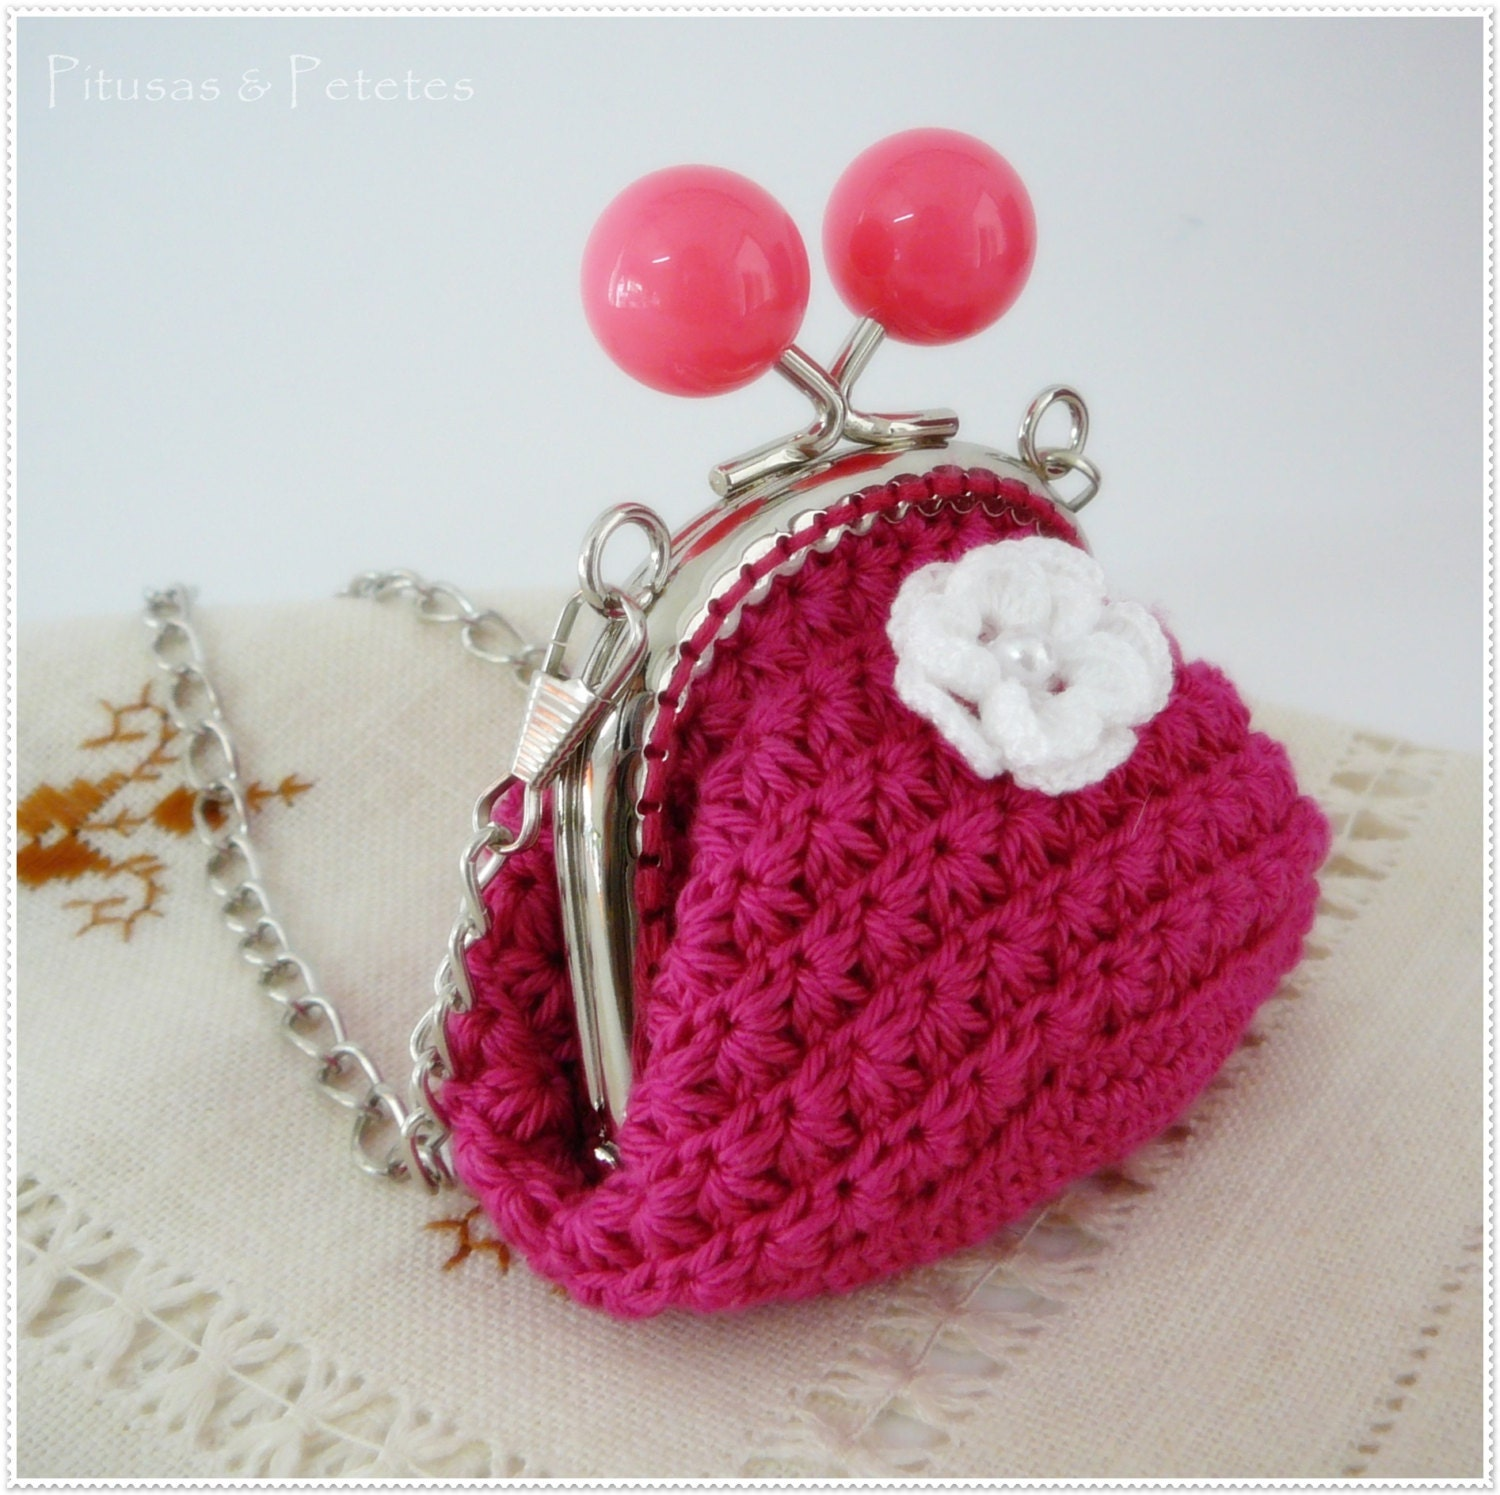 Coin Purse Crochet : Items similar to Crochet coin purse on Etsy